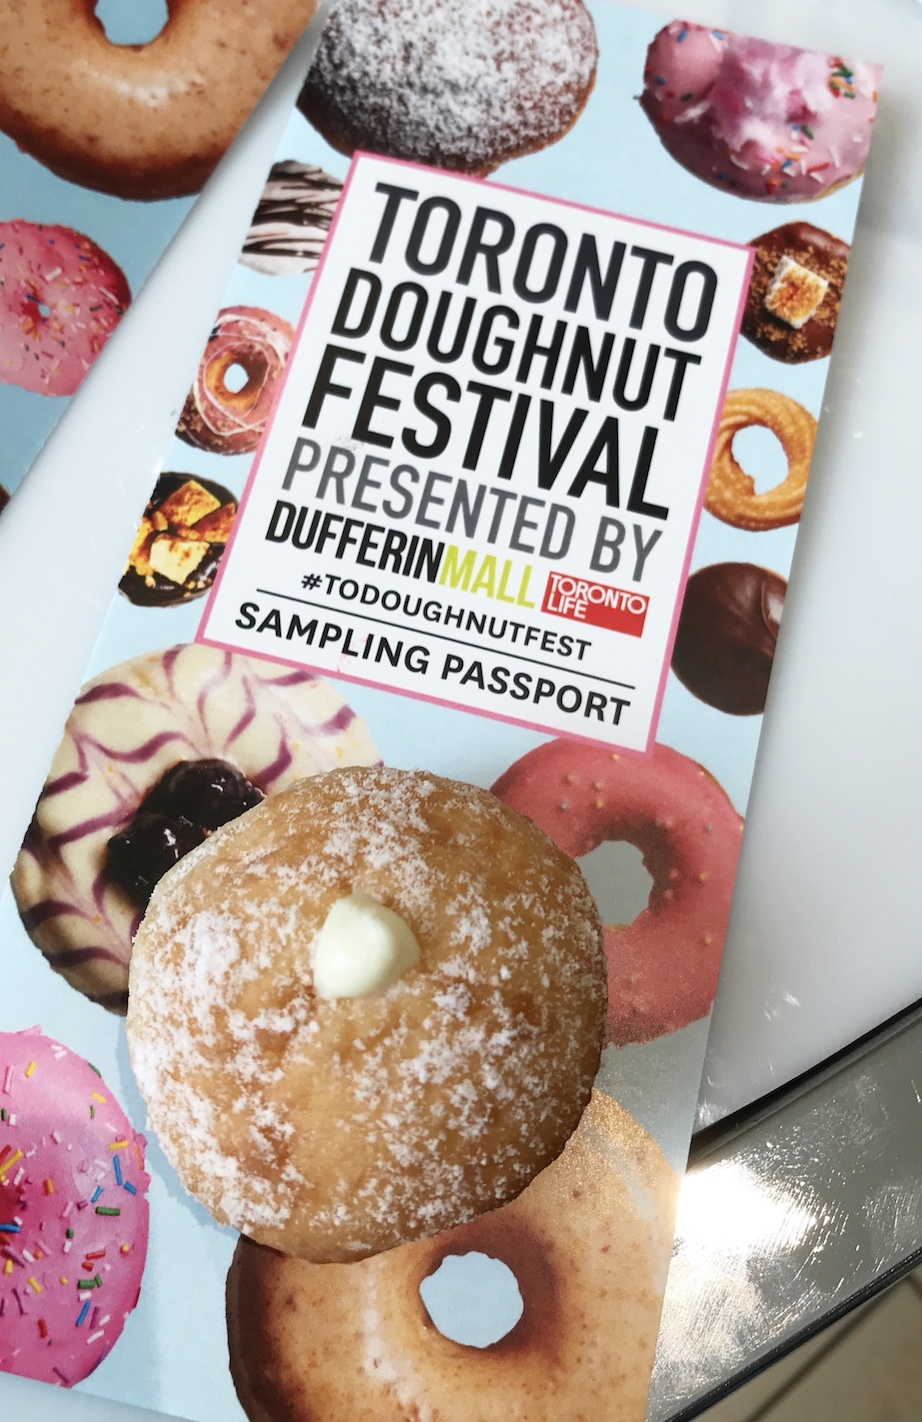 toronto-life-doughnut-festival-2018-dufferin-mall-cheese-boutique.JPG